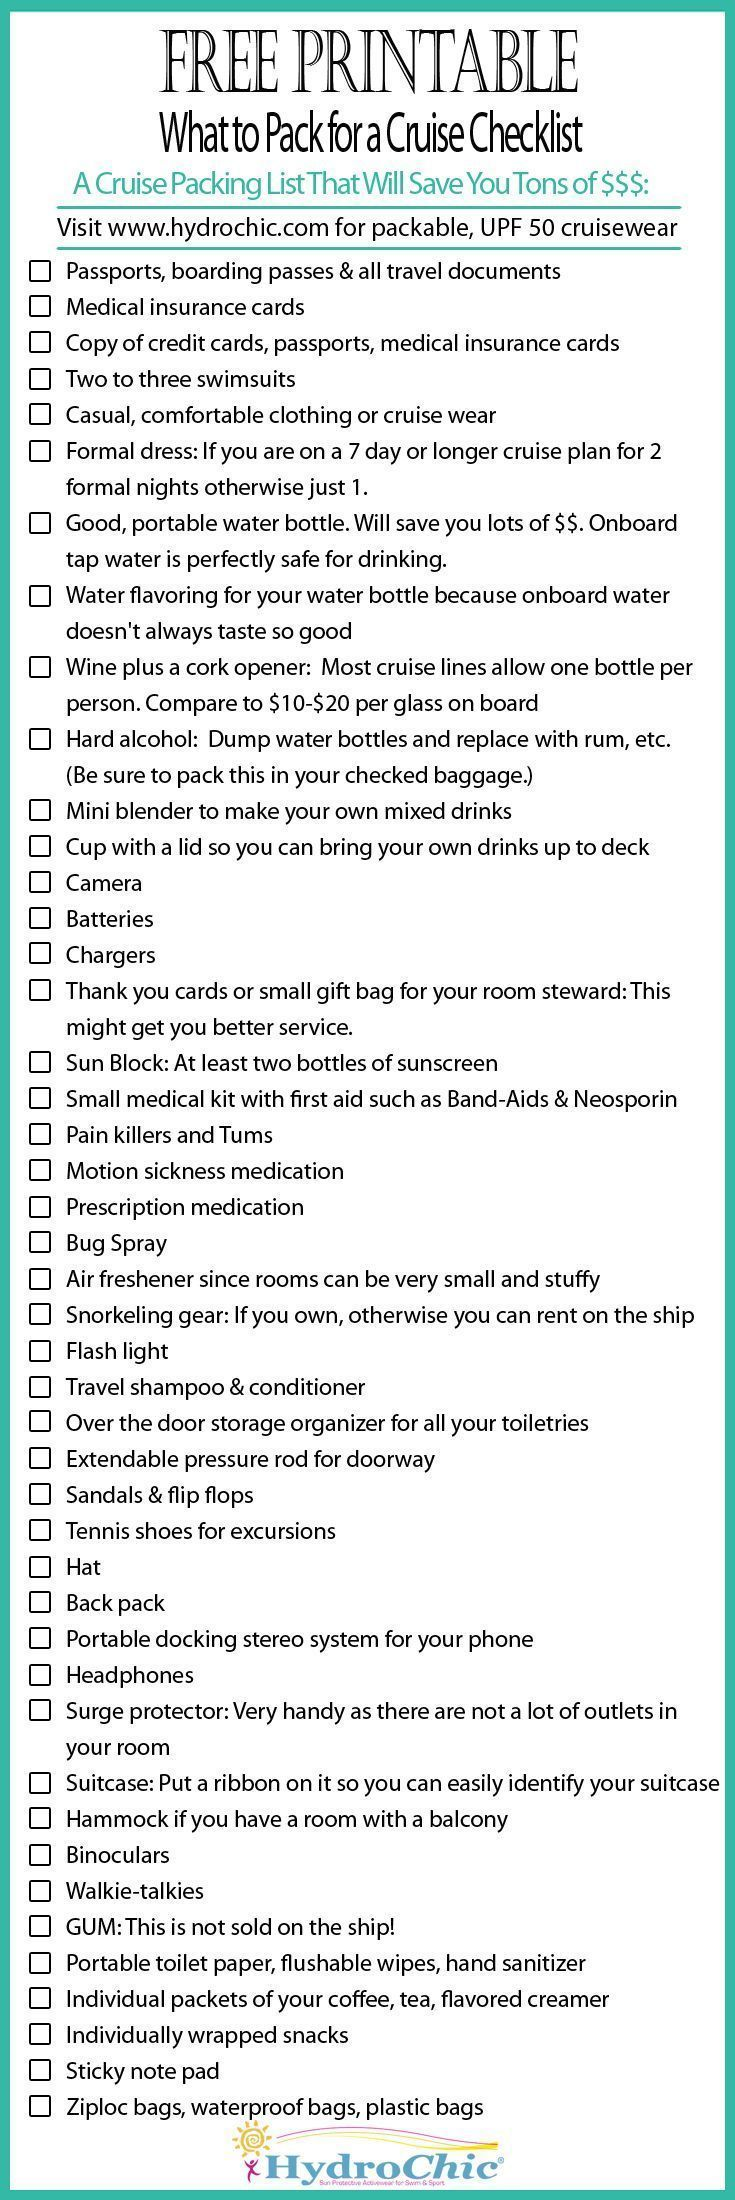 Printable checklist of what to pack for a cruise that will save you lots of $$$.